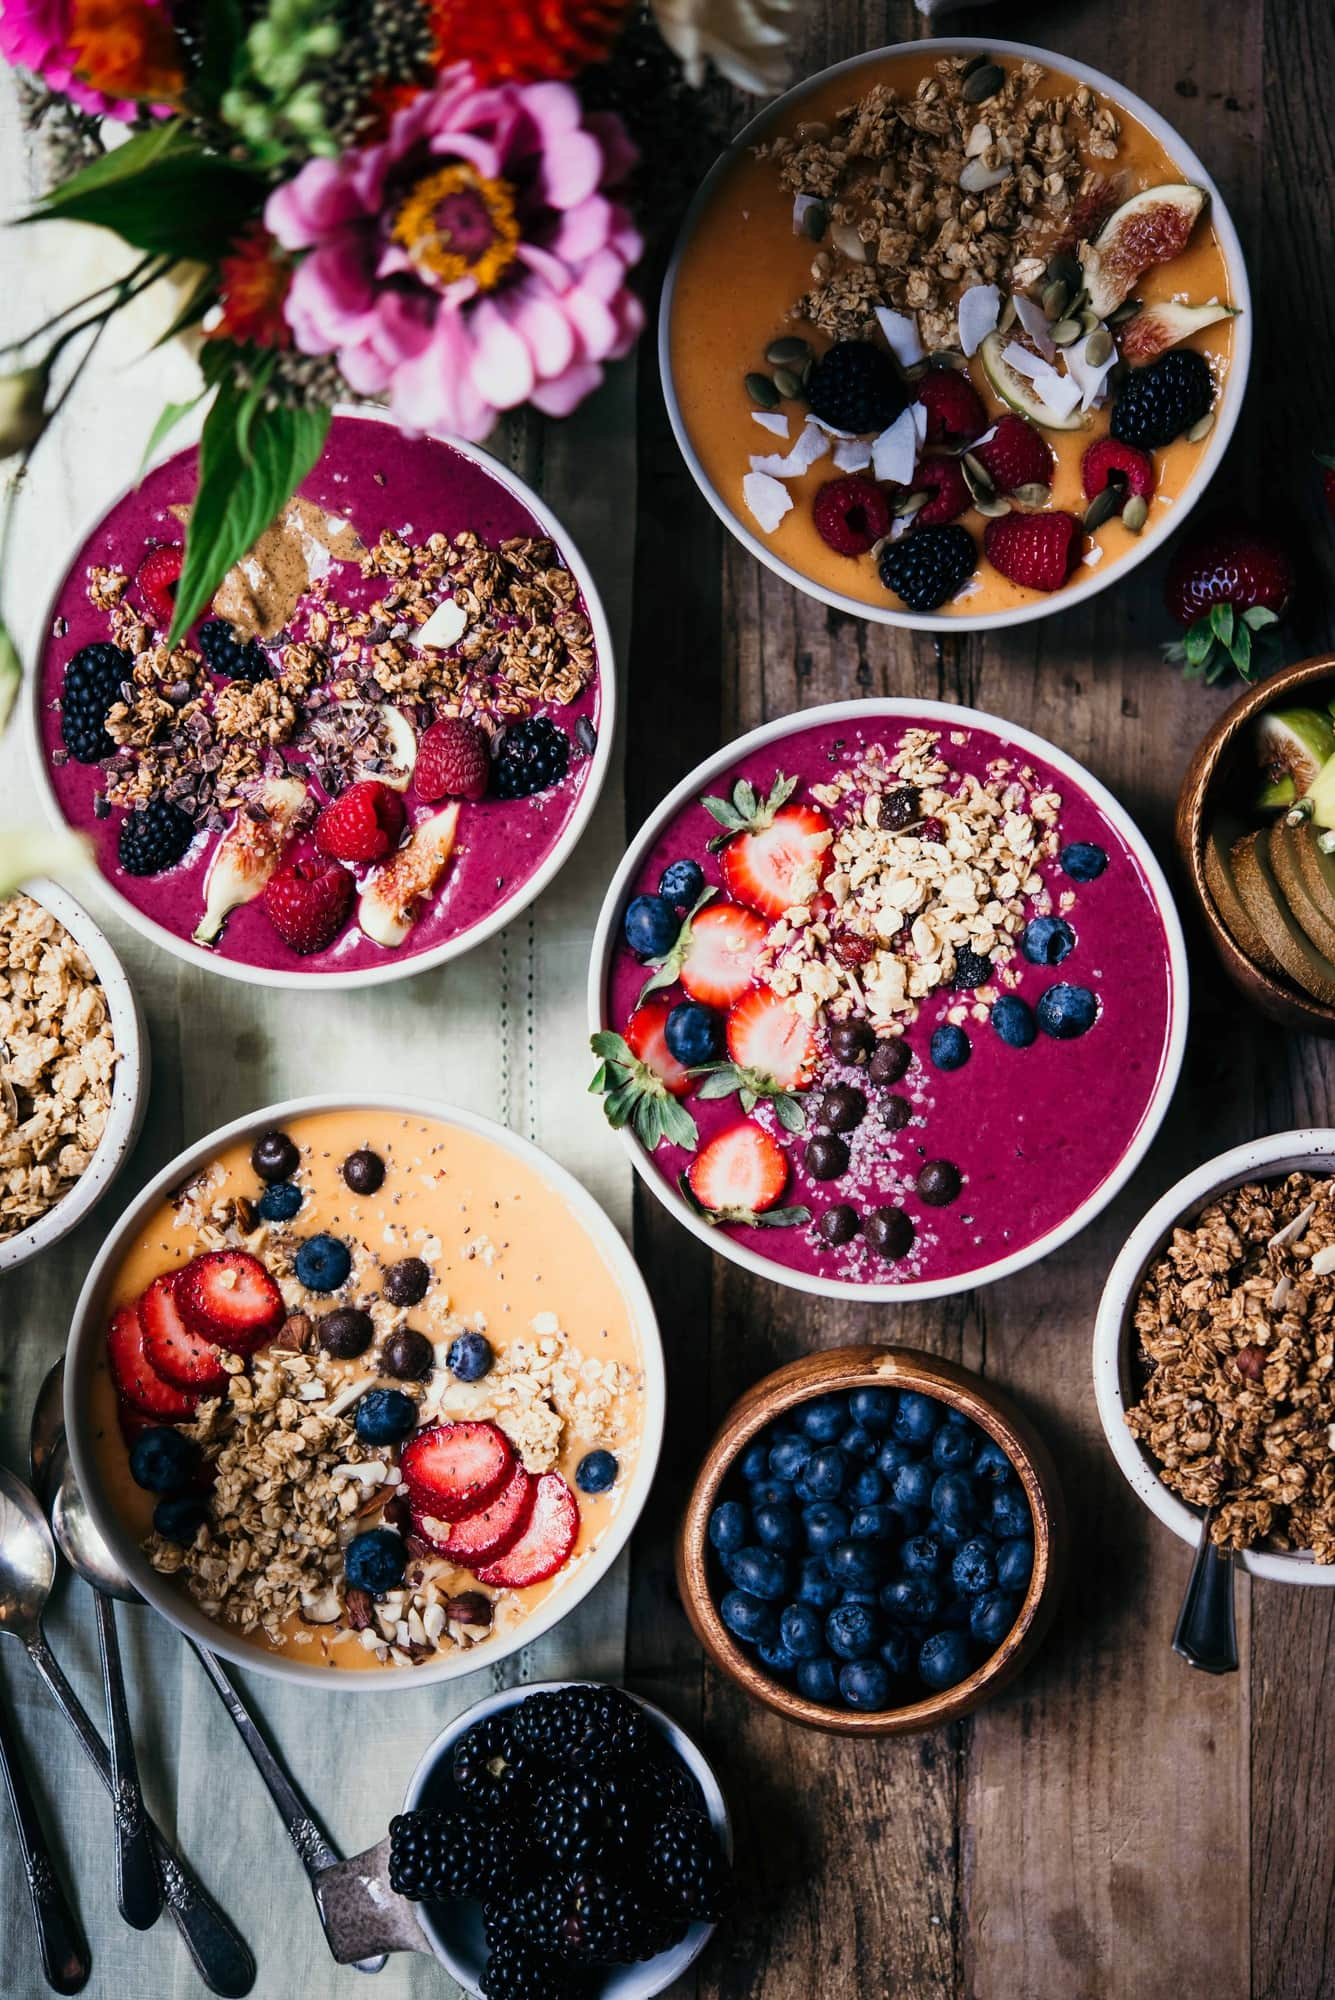 Four pink and orange smoothie bowls topped with fresh berries and granola on a wood table with fresh flowers